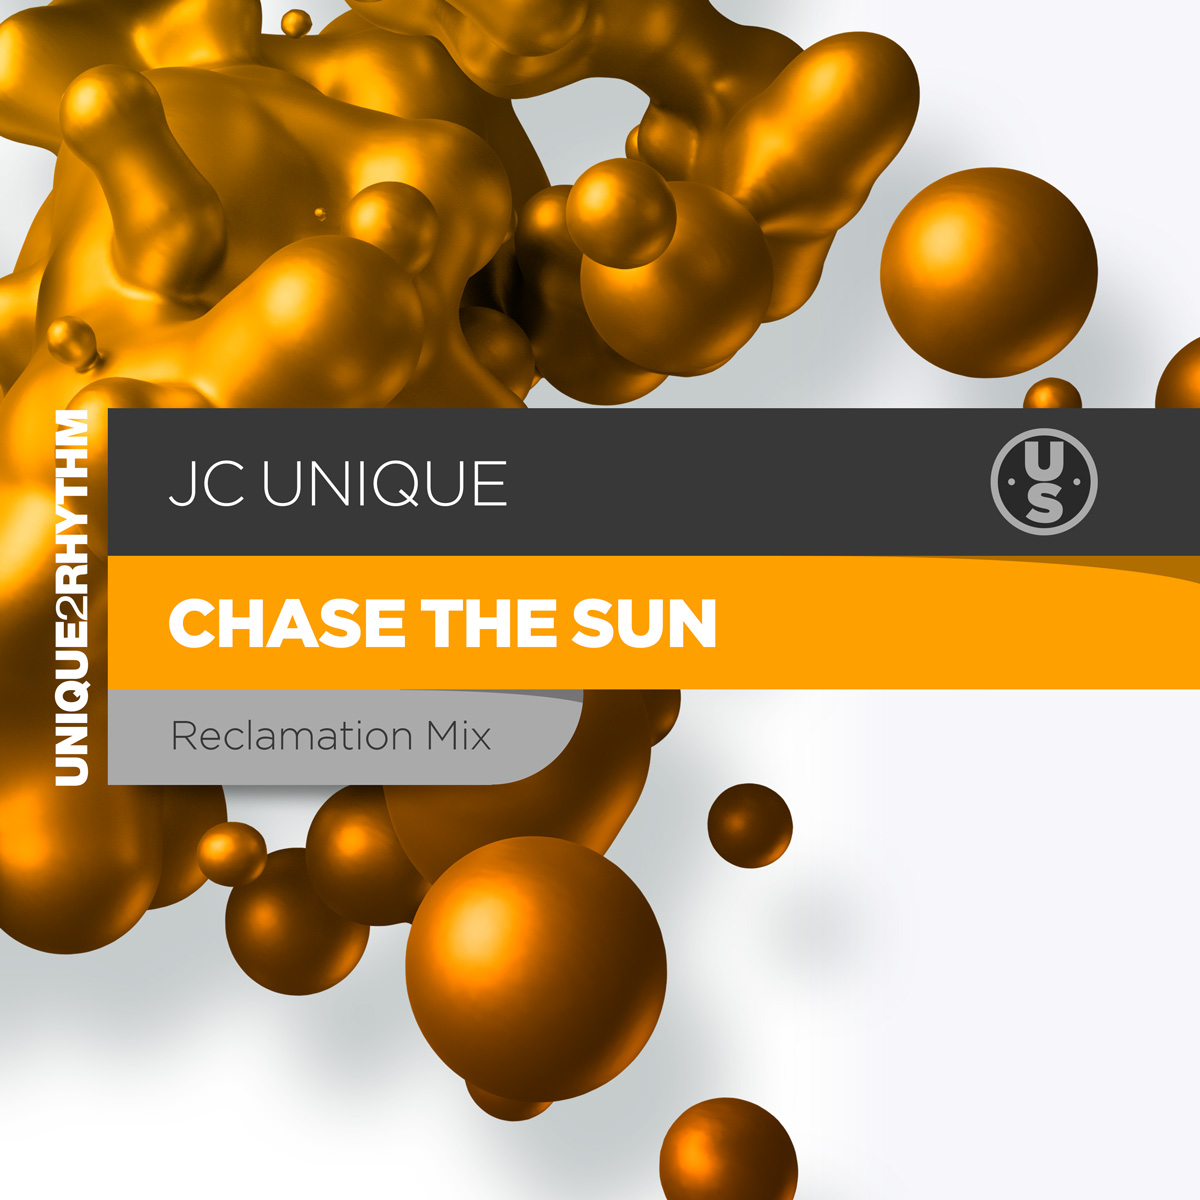 JC Unique - Chase the sun